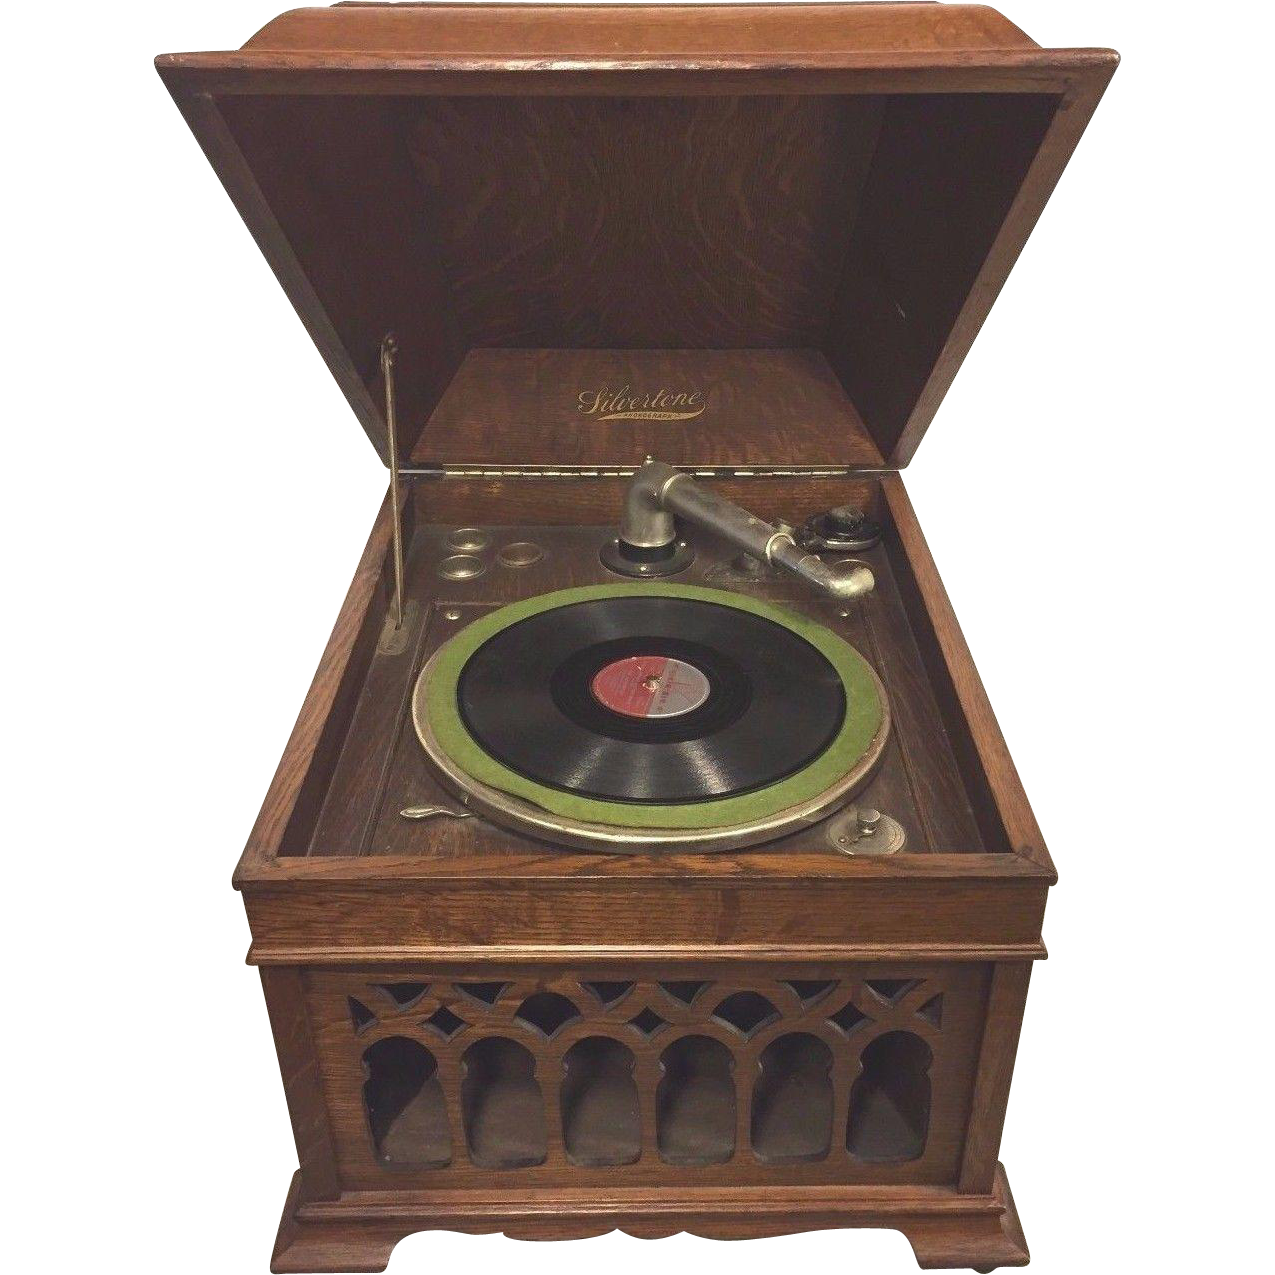 Antique Silvertone Phonograph Runs From Timelesstokensde